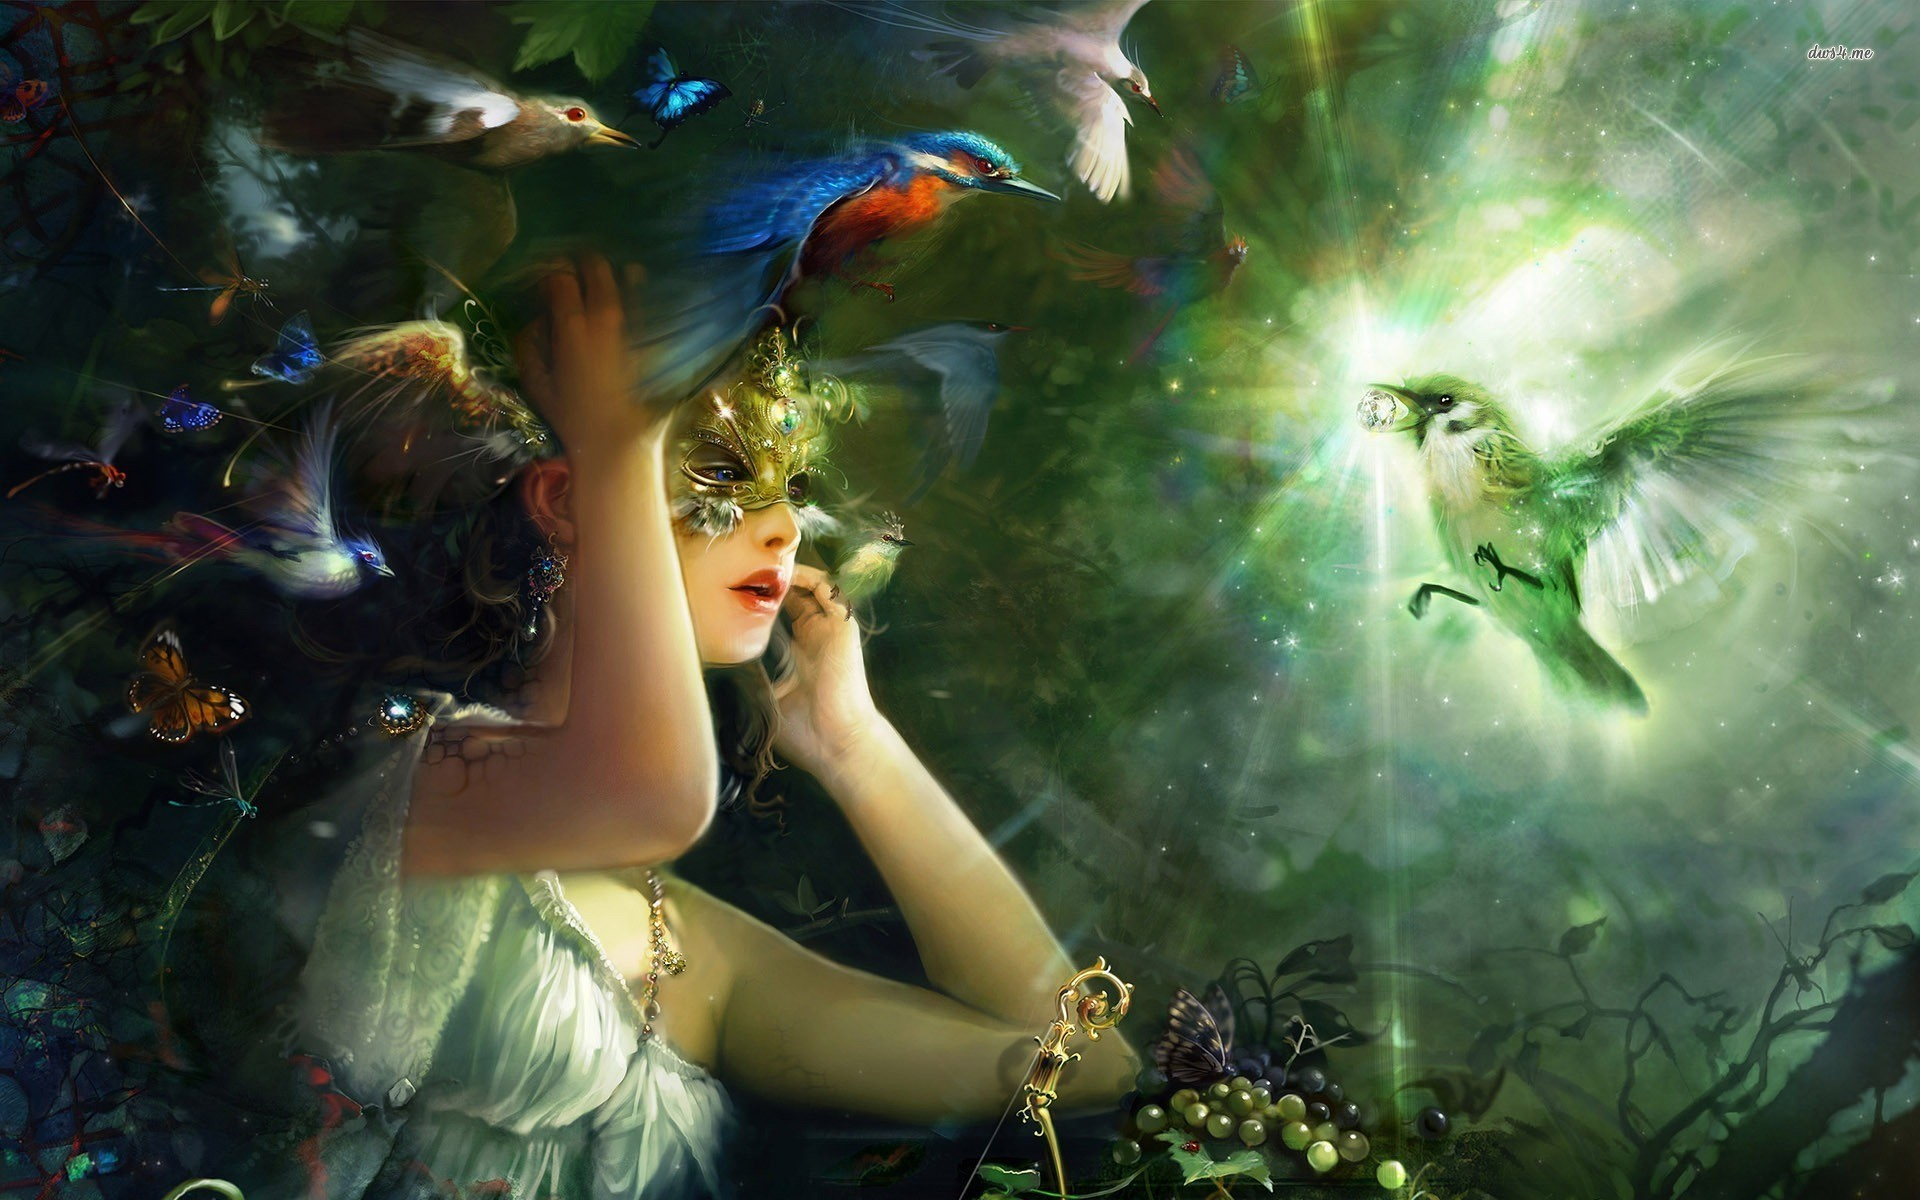 Fairies wallpapers 60 images 1920x1200 1920x1200 fairy wallpapers hd pixelstalk beautiful fairies wallpapers wallpaper 1920x1200 thecheapjerseys Images